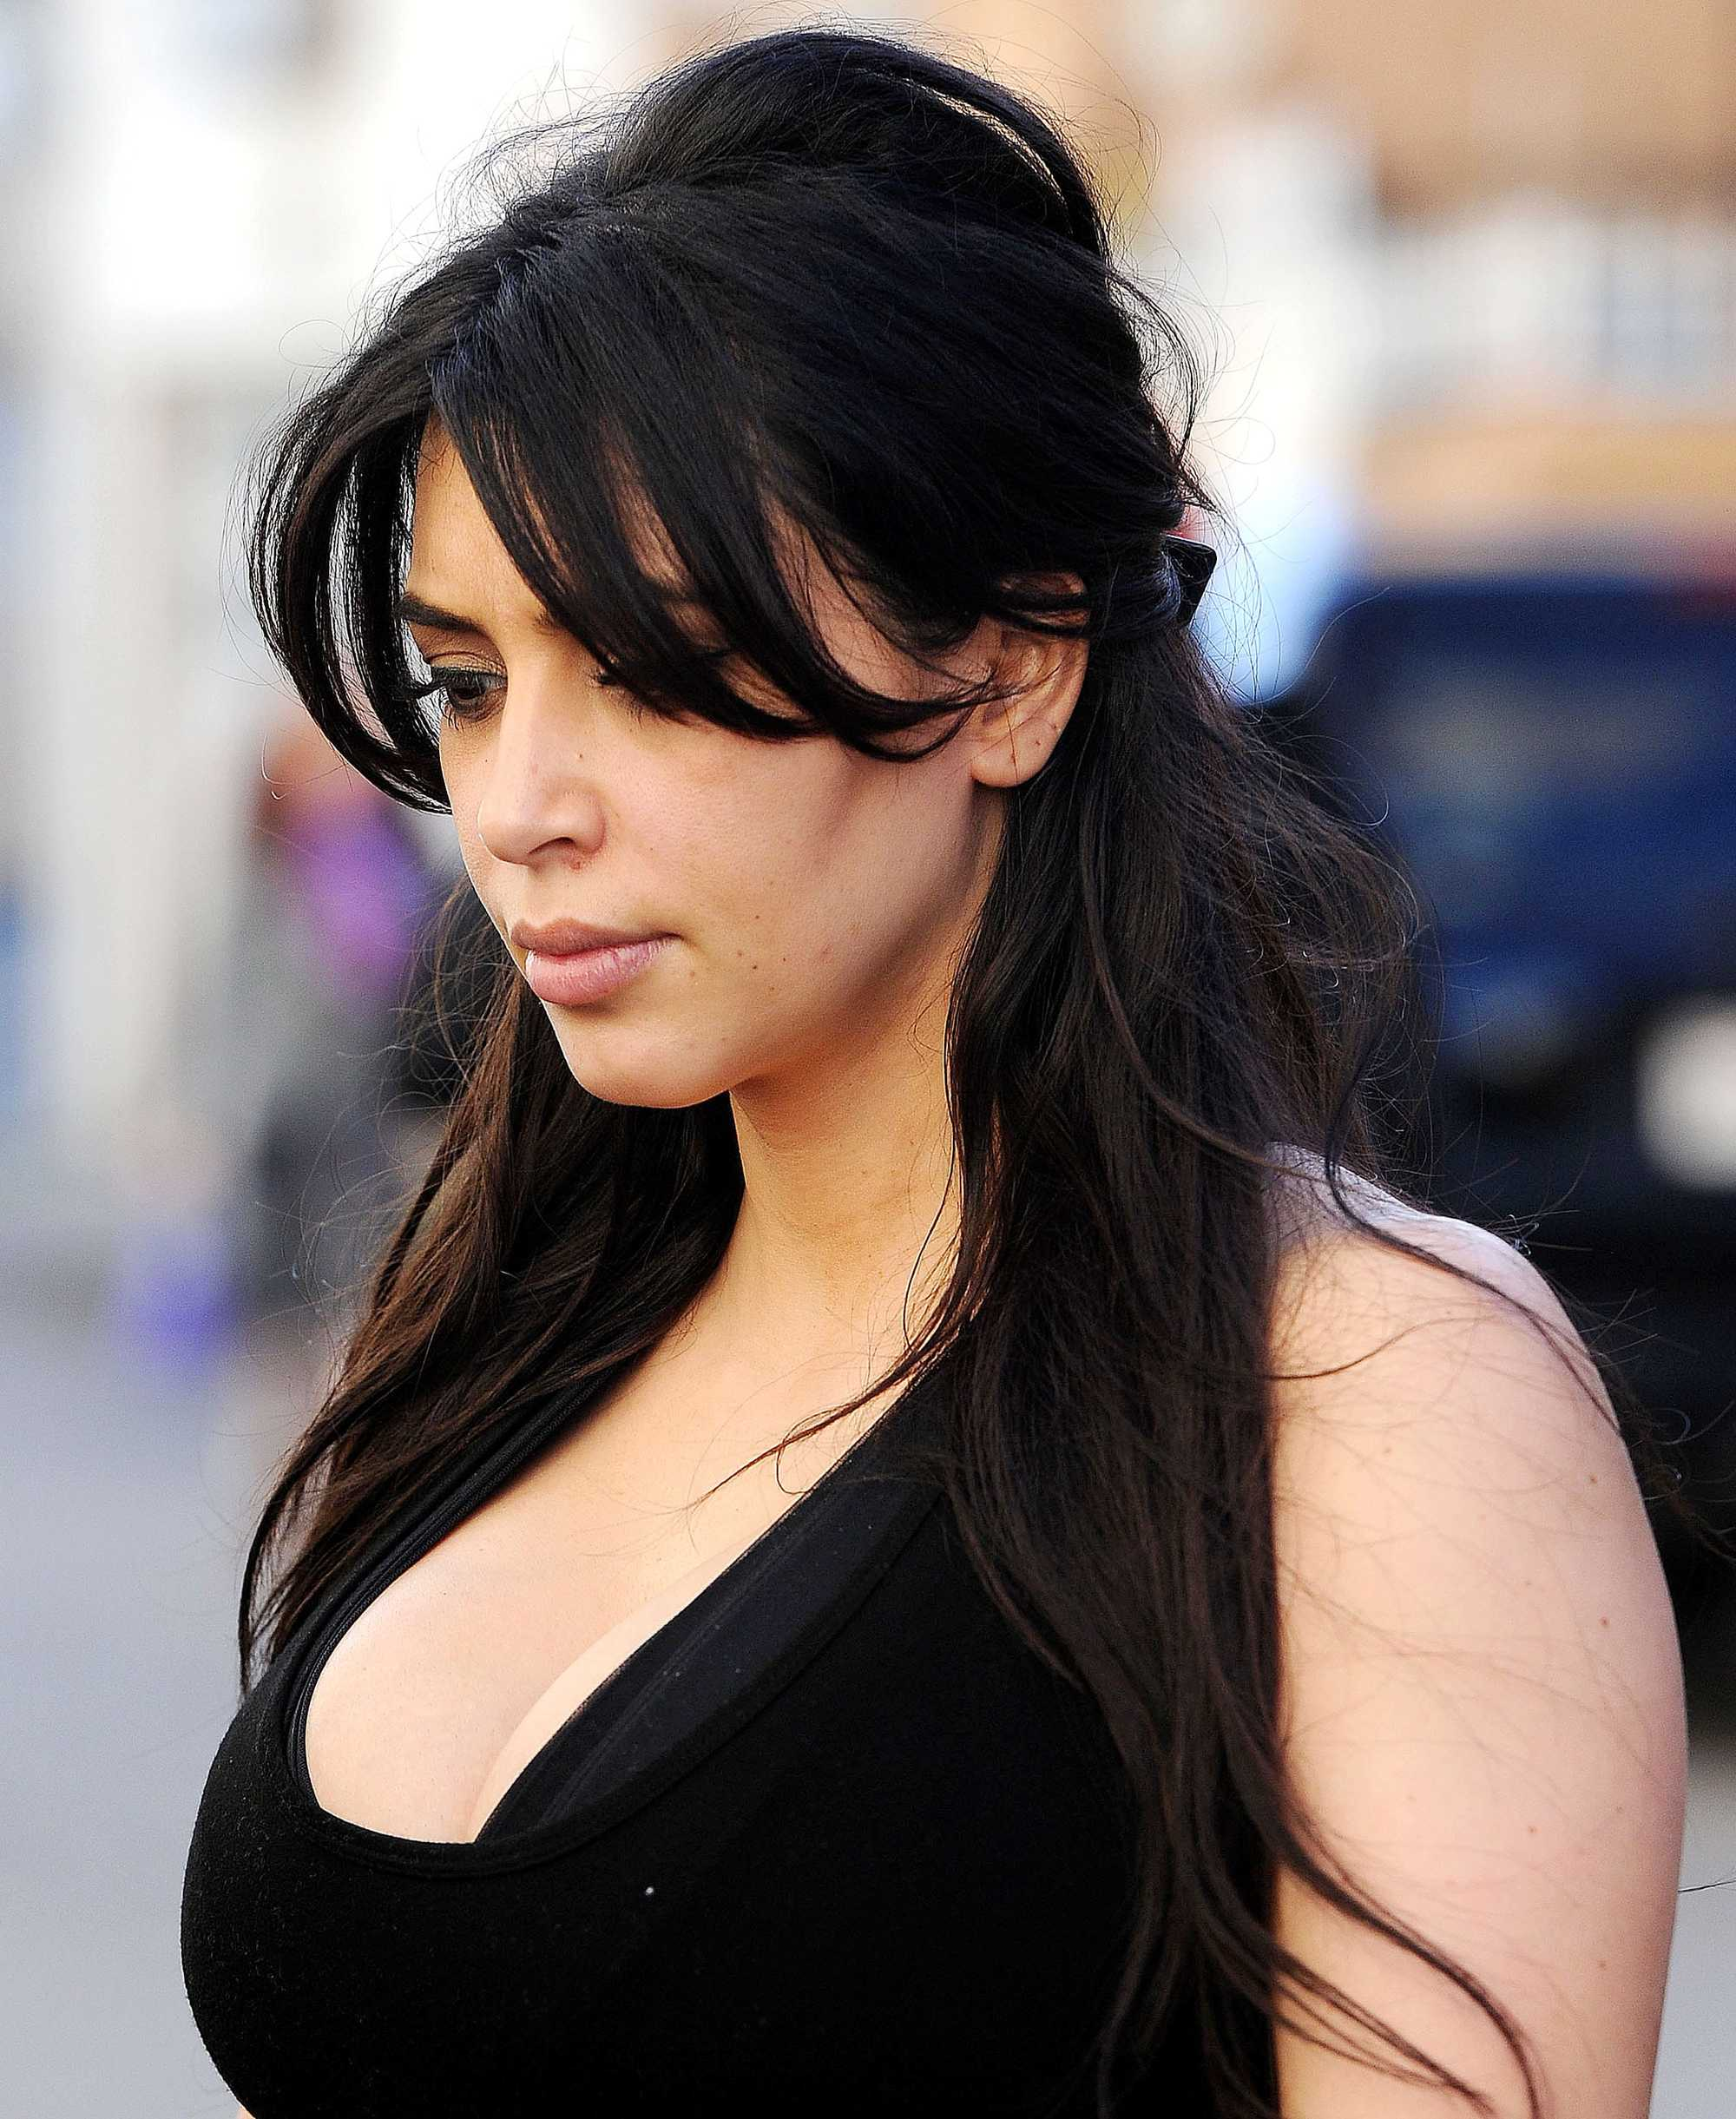 Kim Kardashian with half up half down hairstyle in gym wear